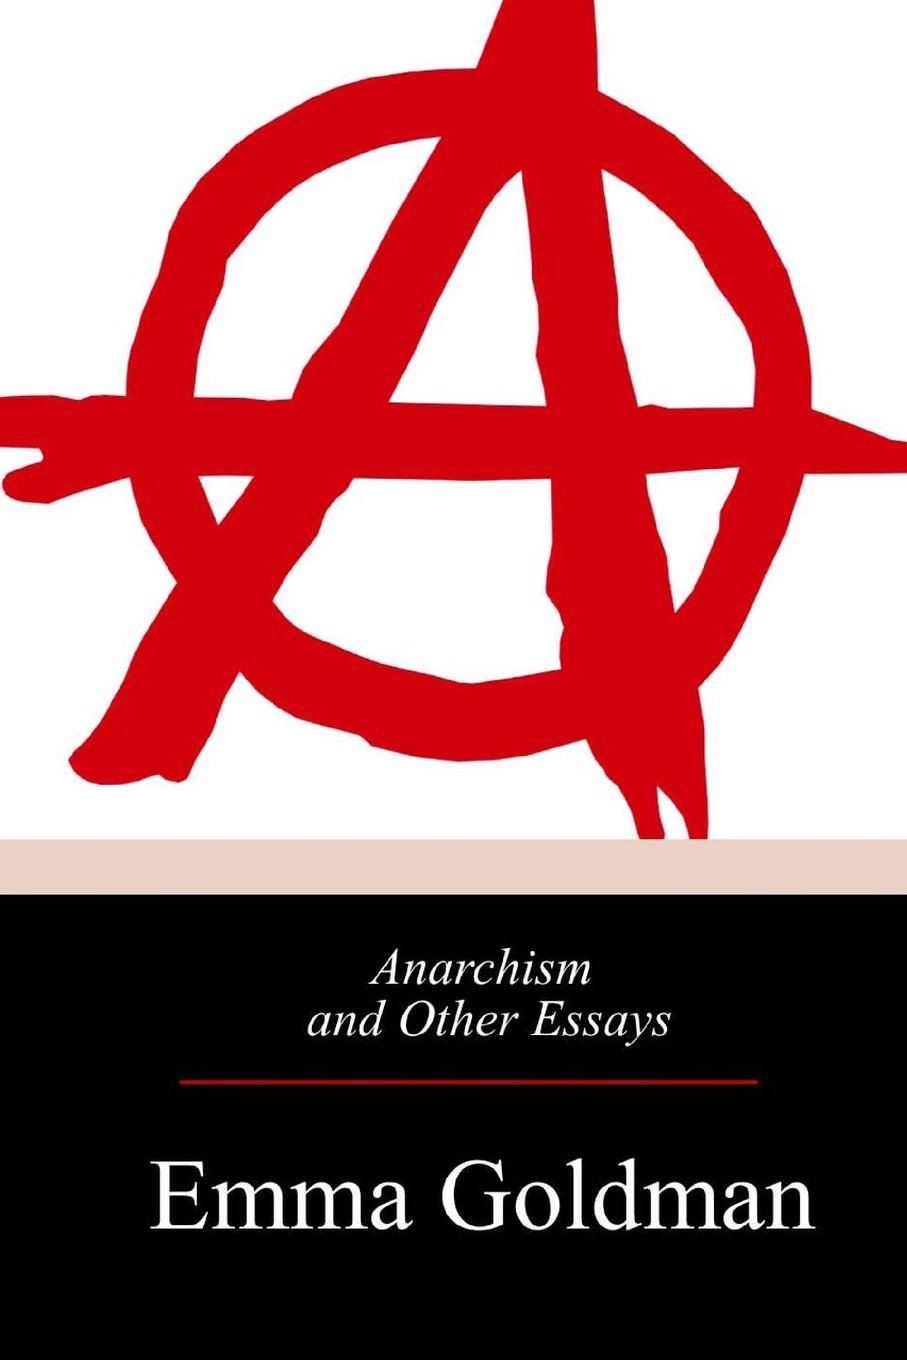 008 610zkhxxiil Essay Example Anarchism And Other Incredible Essays Emma Goldman Summary Mla Citation Full